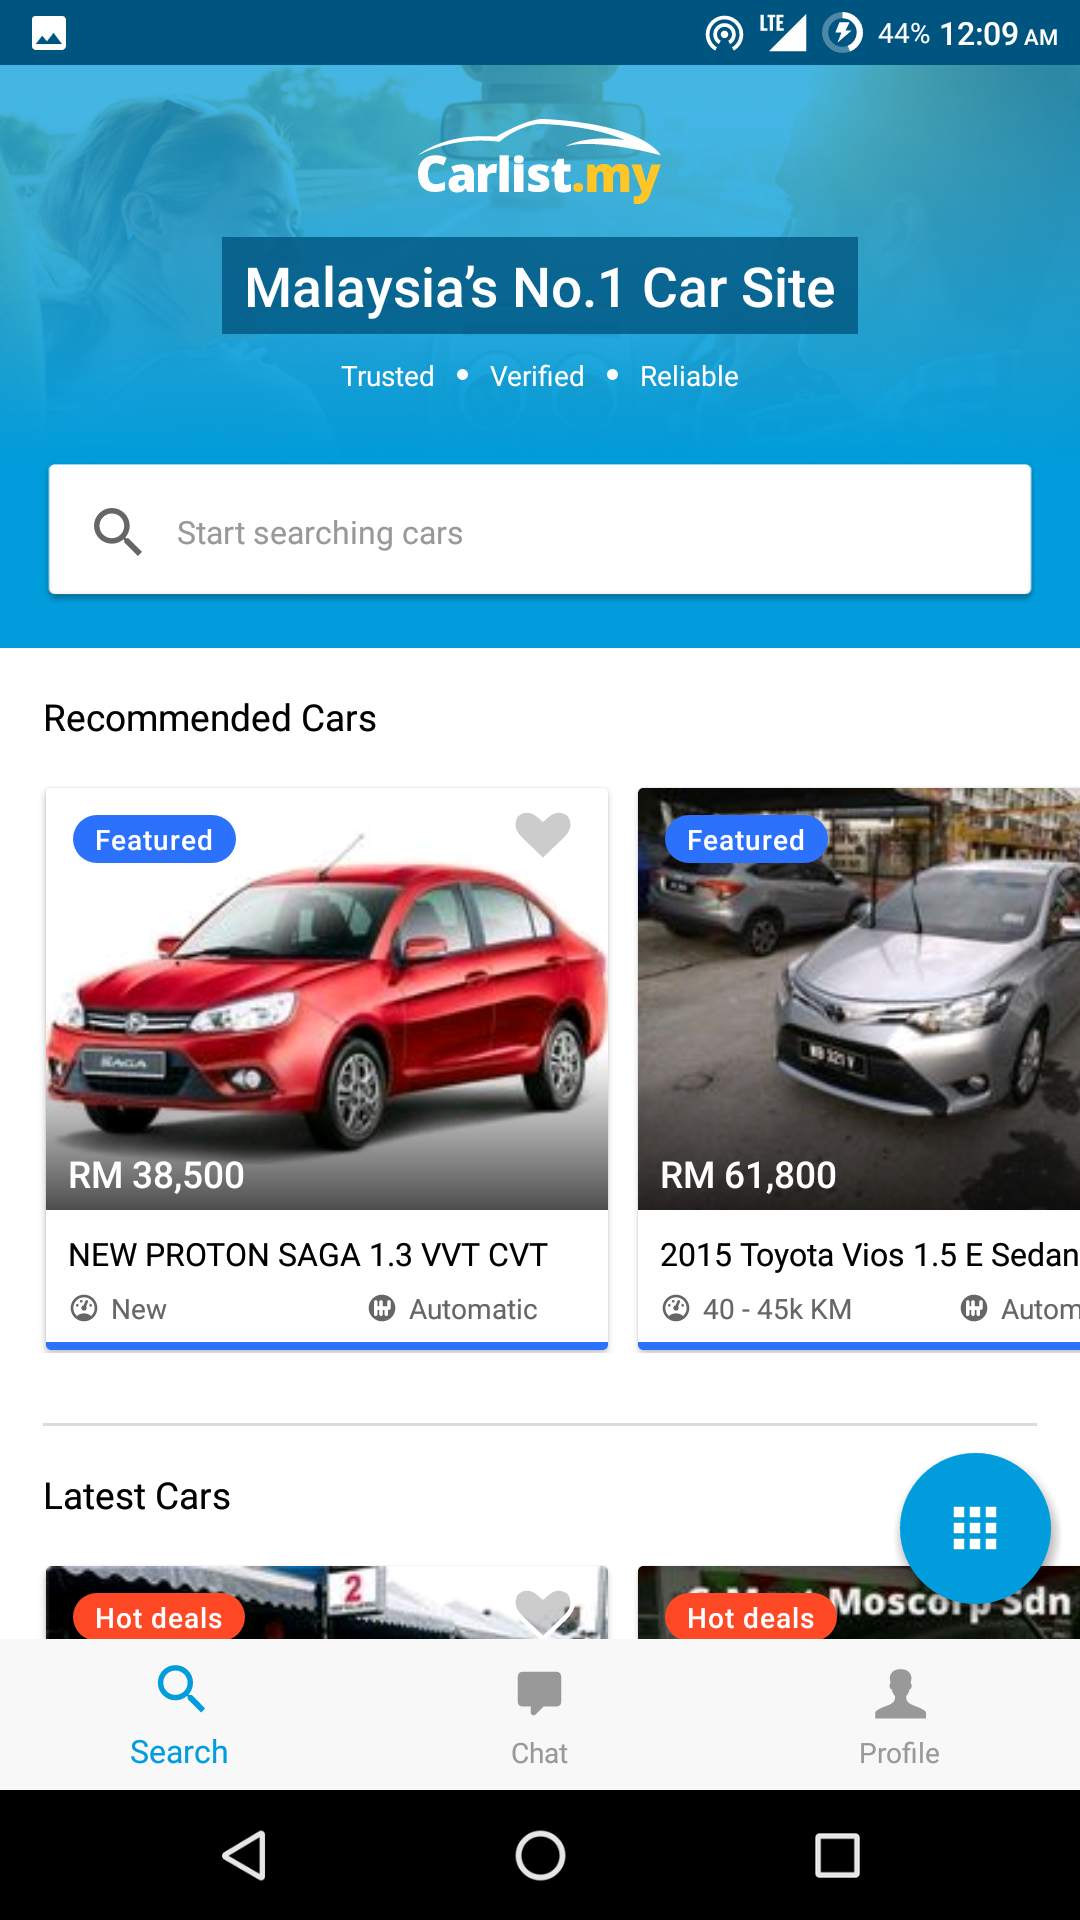 the carlist app is very simple and straightforward searching for the car of your dream is fast and easy no more wasting time and energy as everything